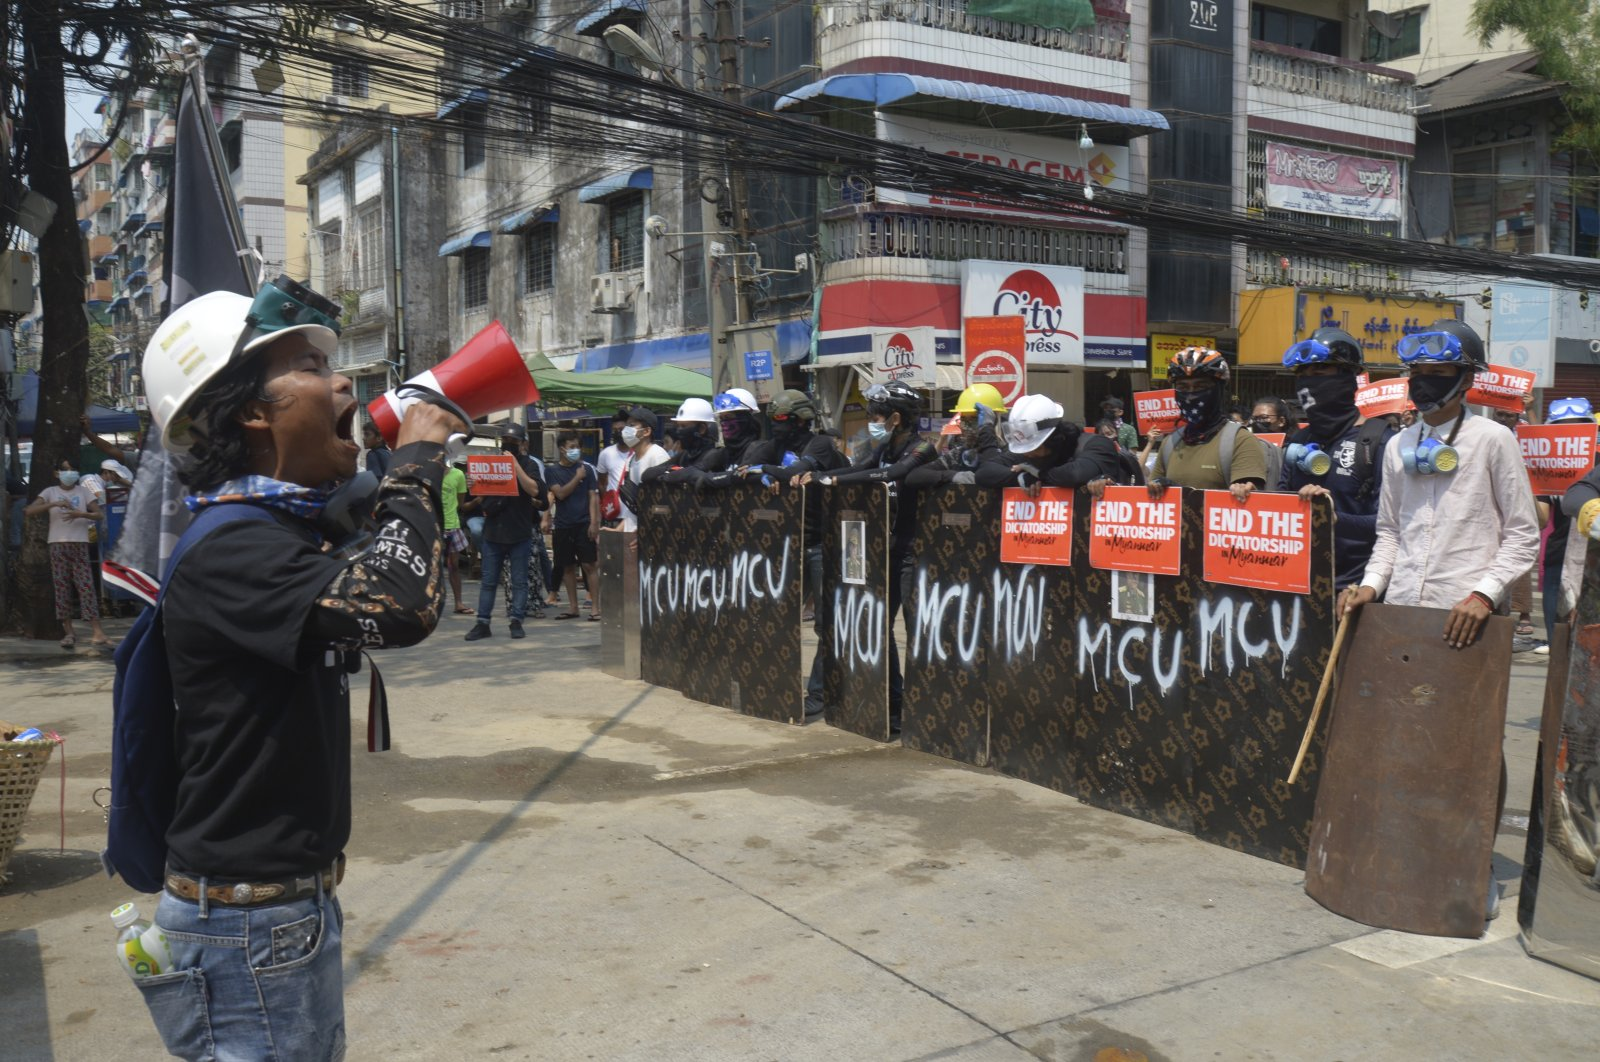 Anti-coup protesters gather with makeshift shields during a demonstration in Yangon, Myanmar, March 12, 2021. (AP Photo)